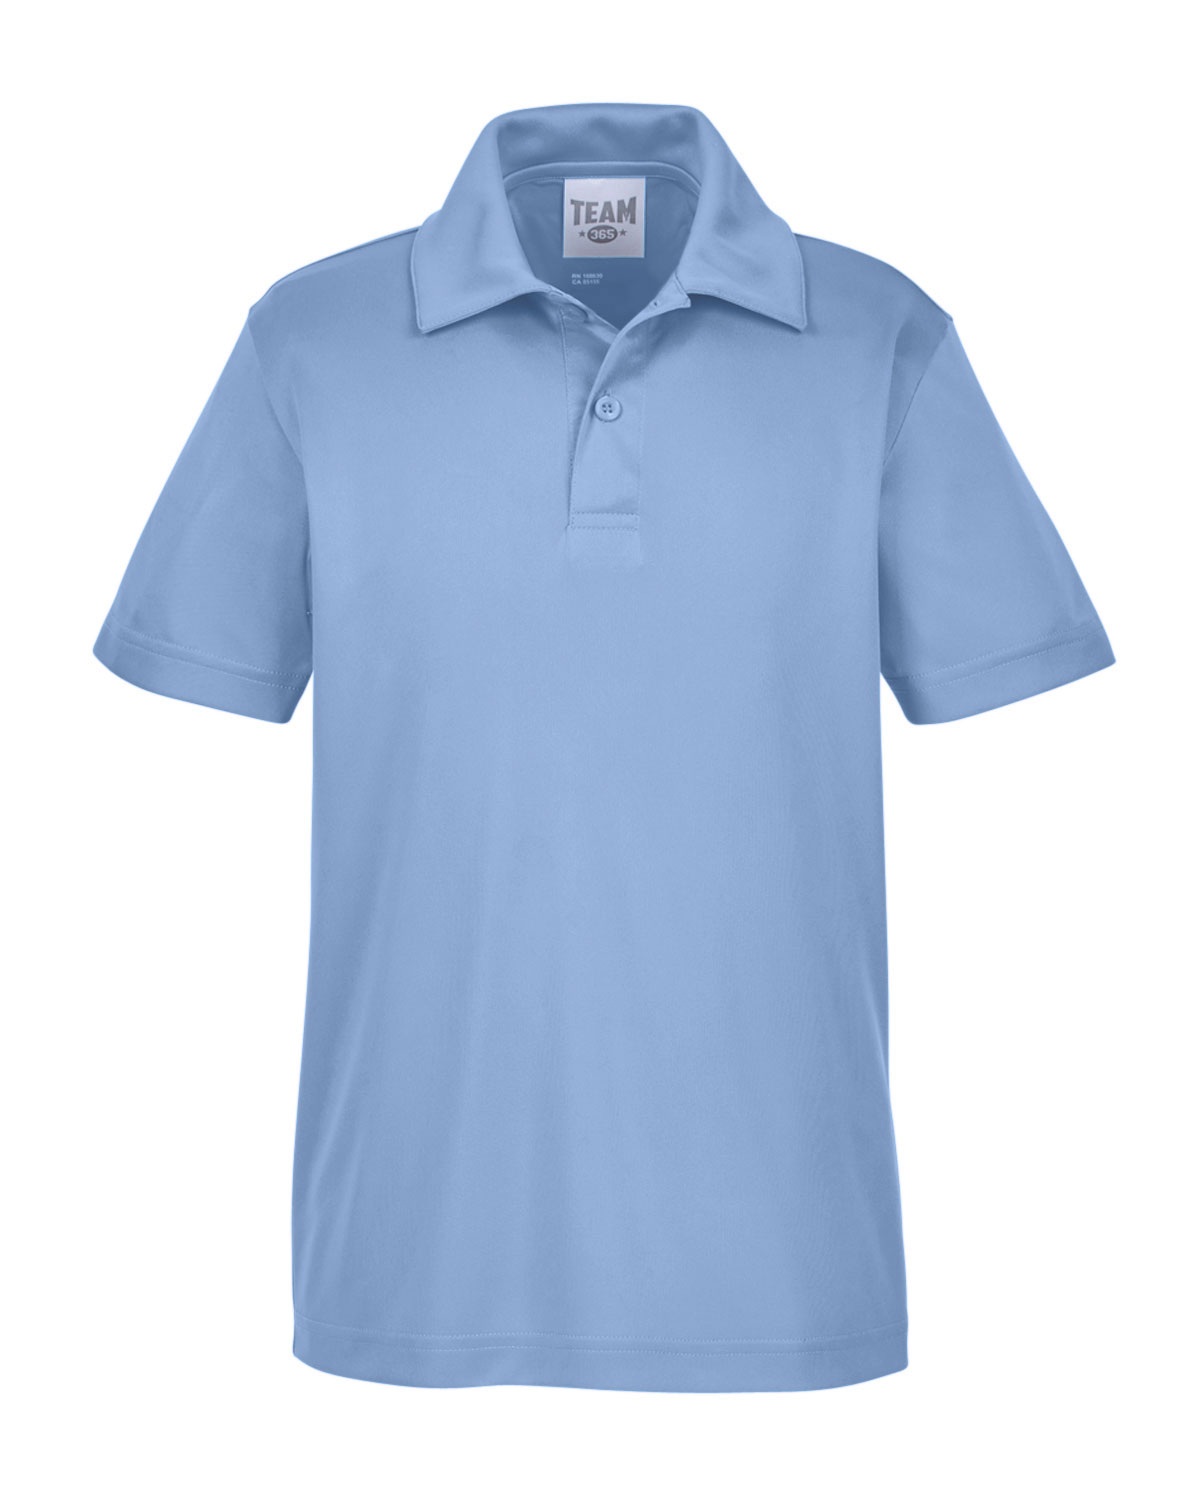 Team 365 Mens Zone Performance Polo